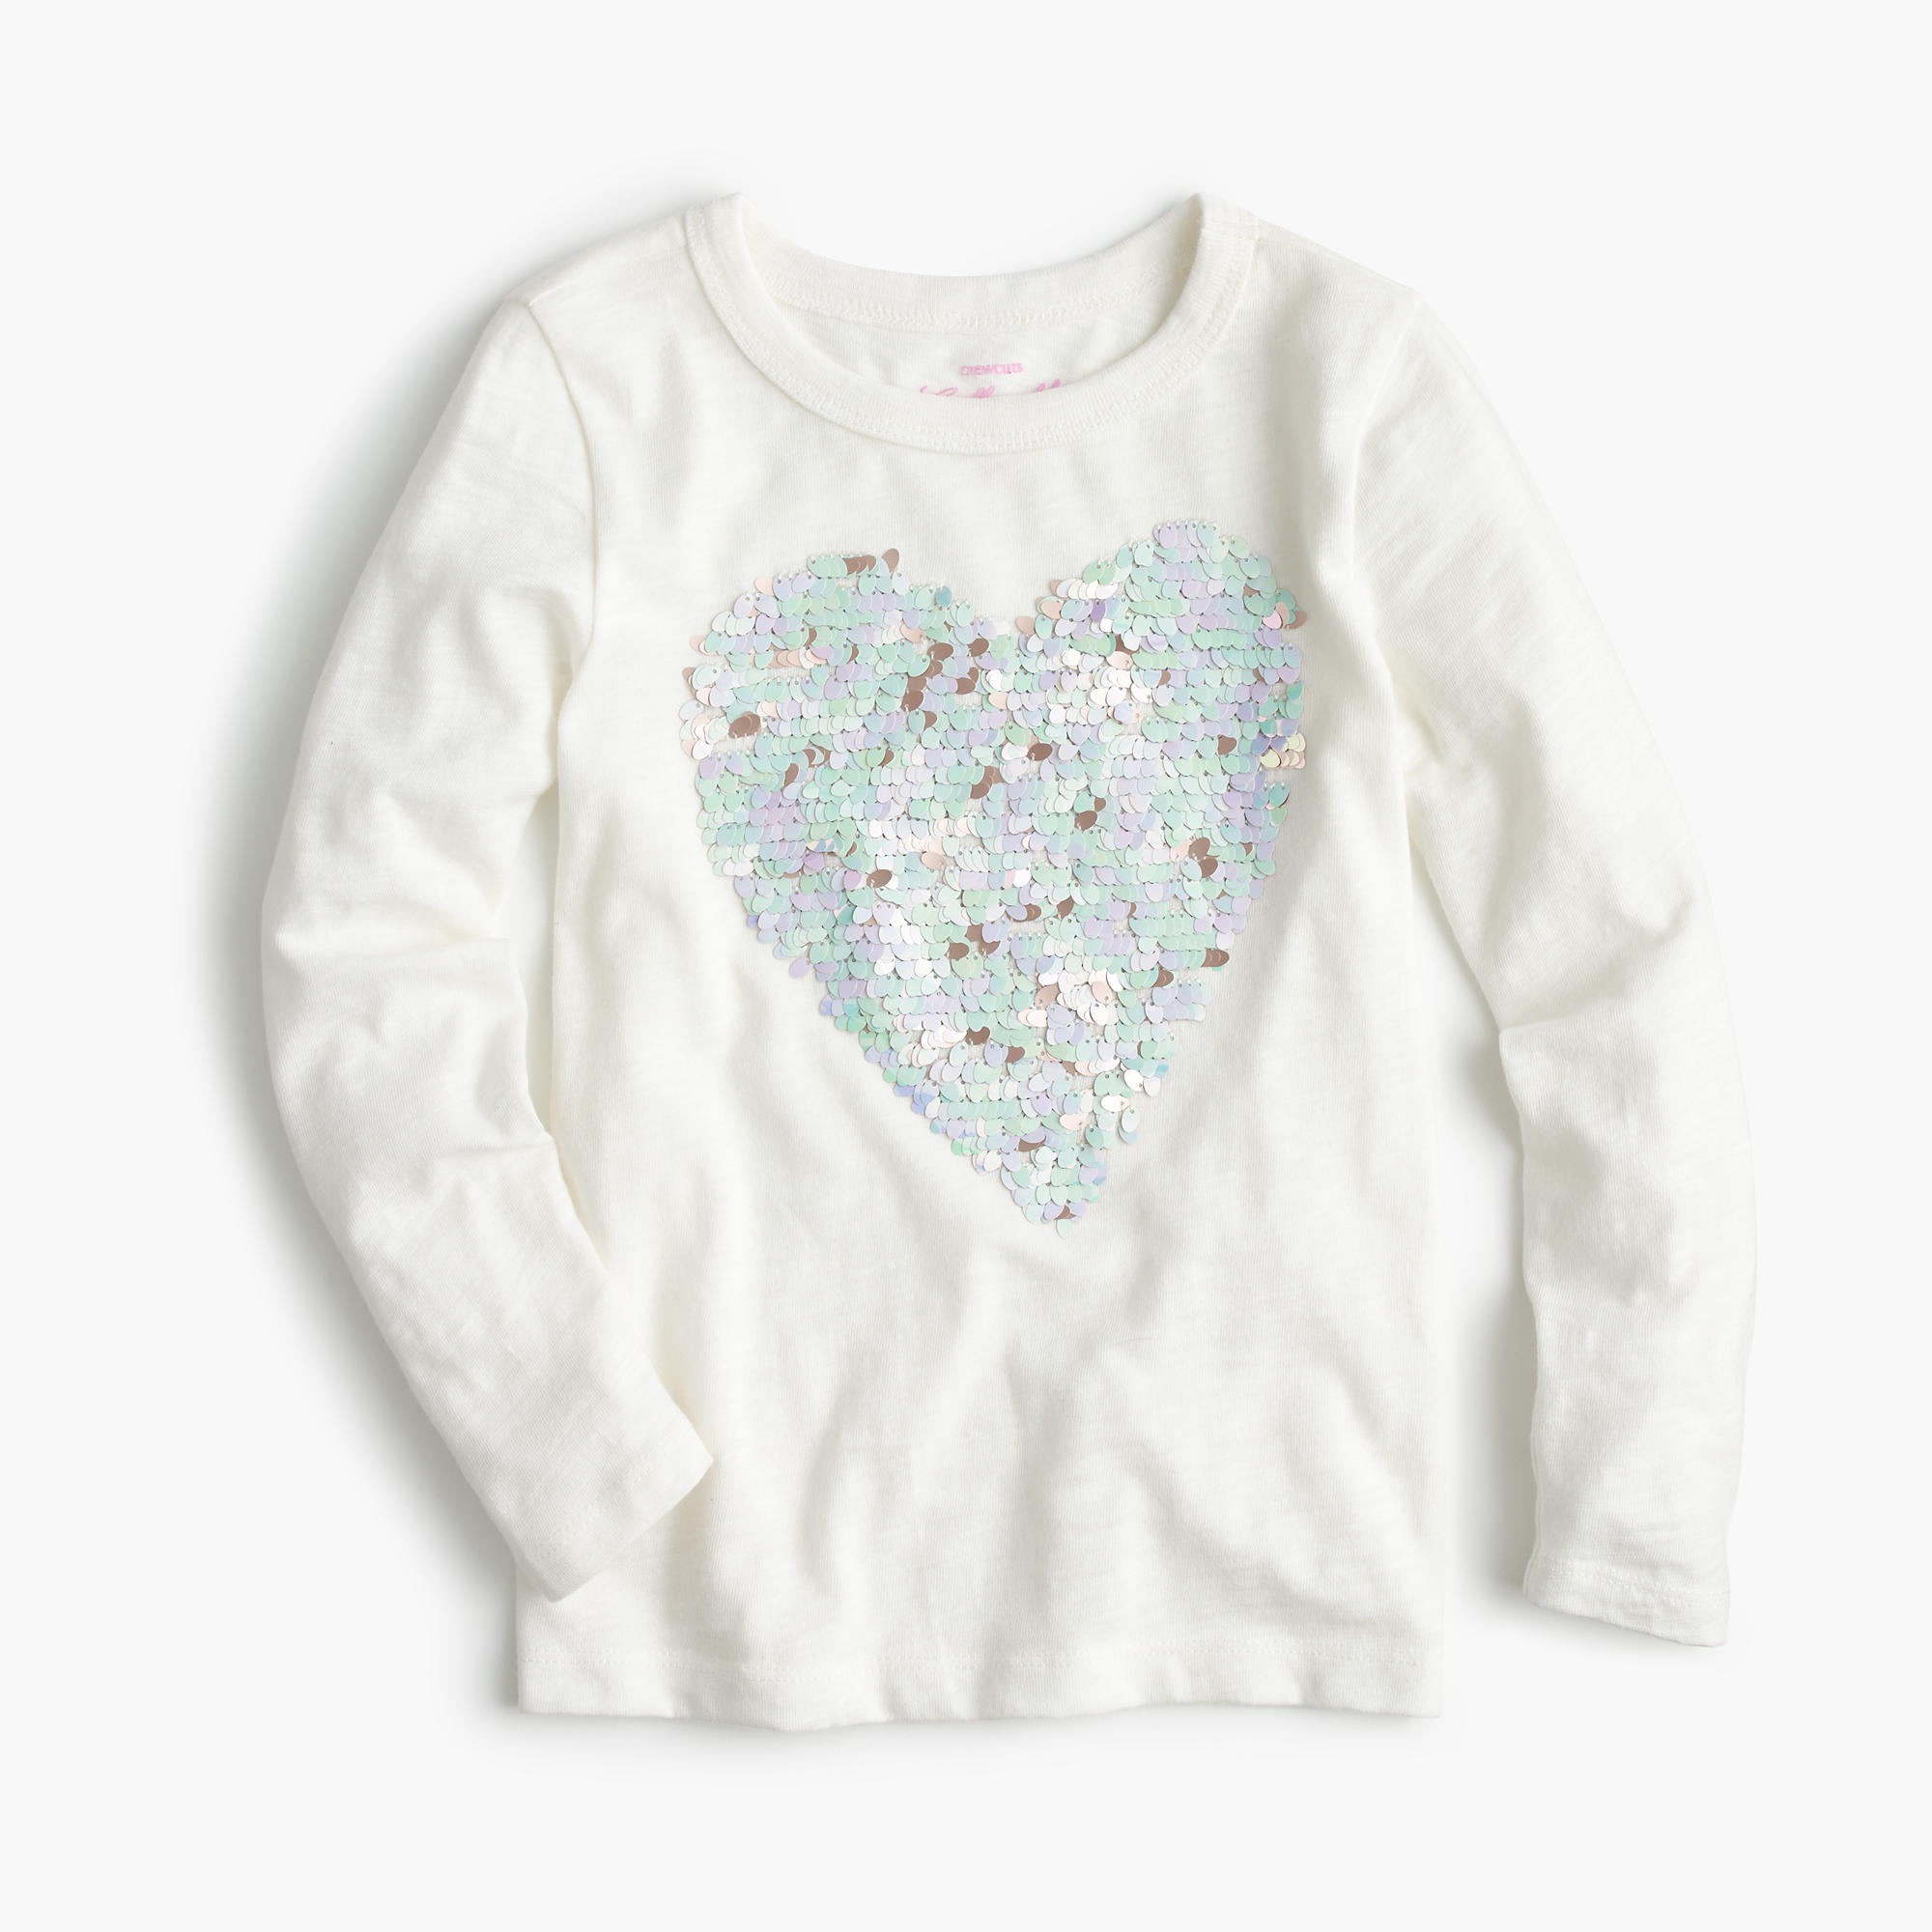 Girls 39 sequin heart t shirt girls 39 tees j crew for Girls sequin t shirt